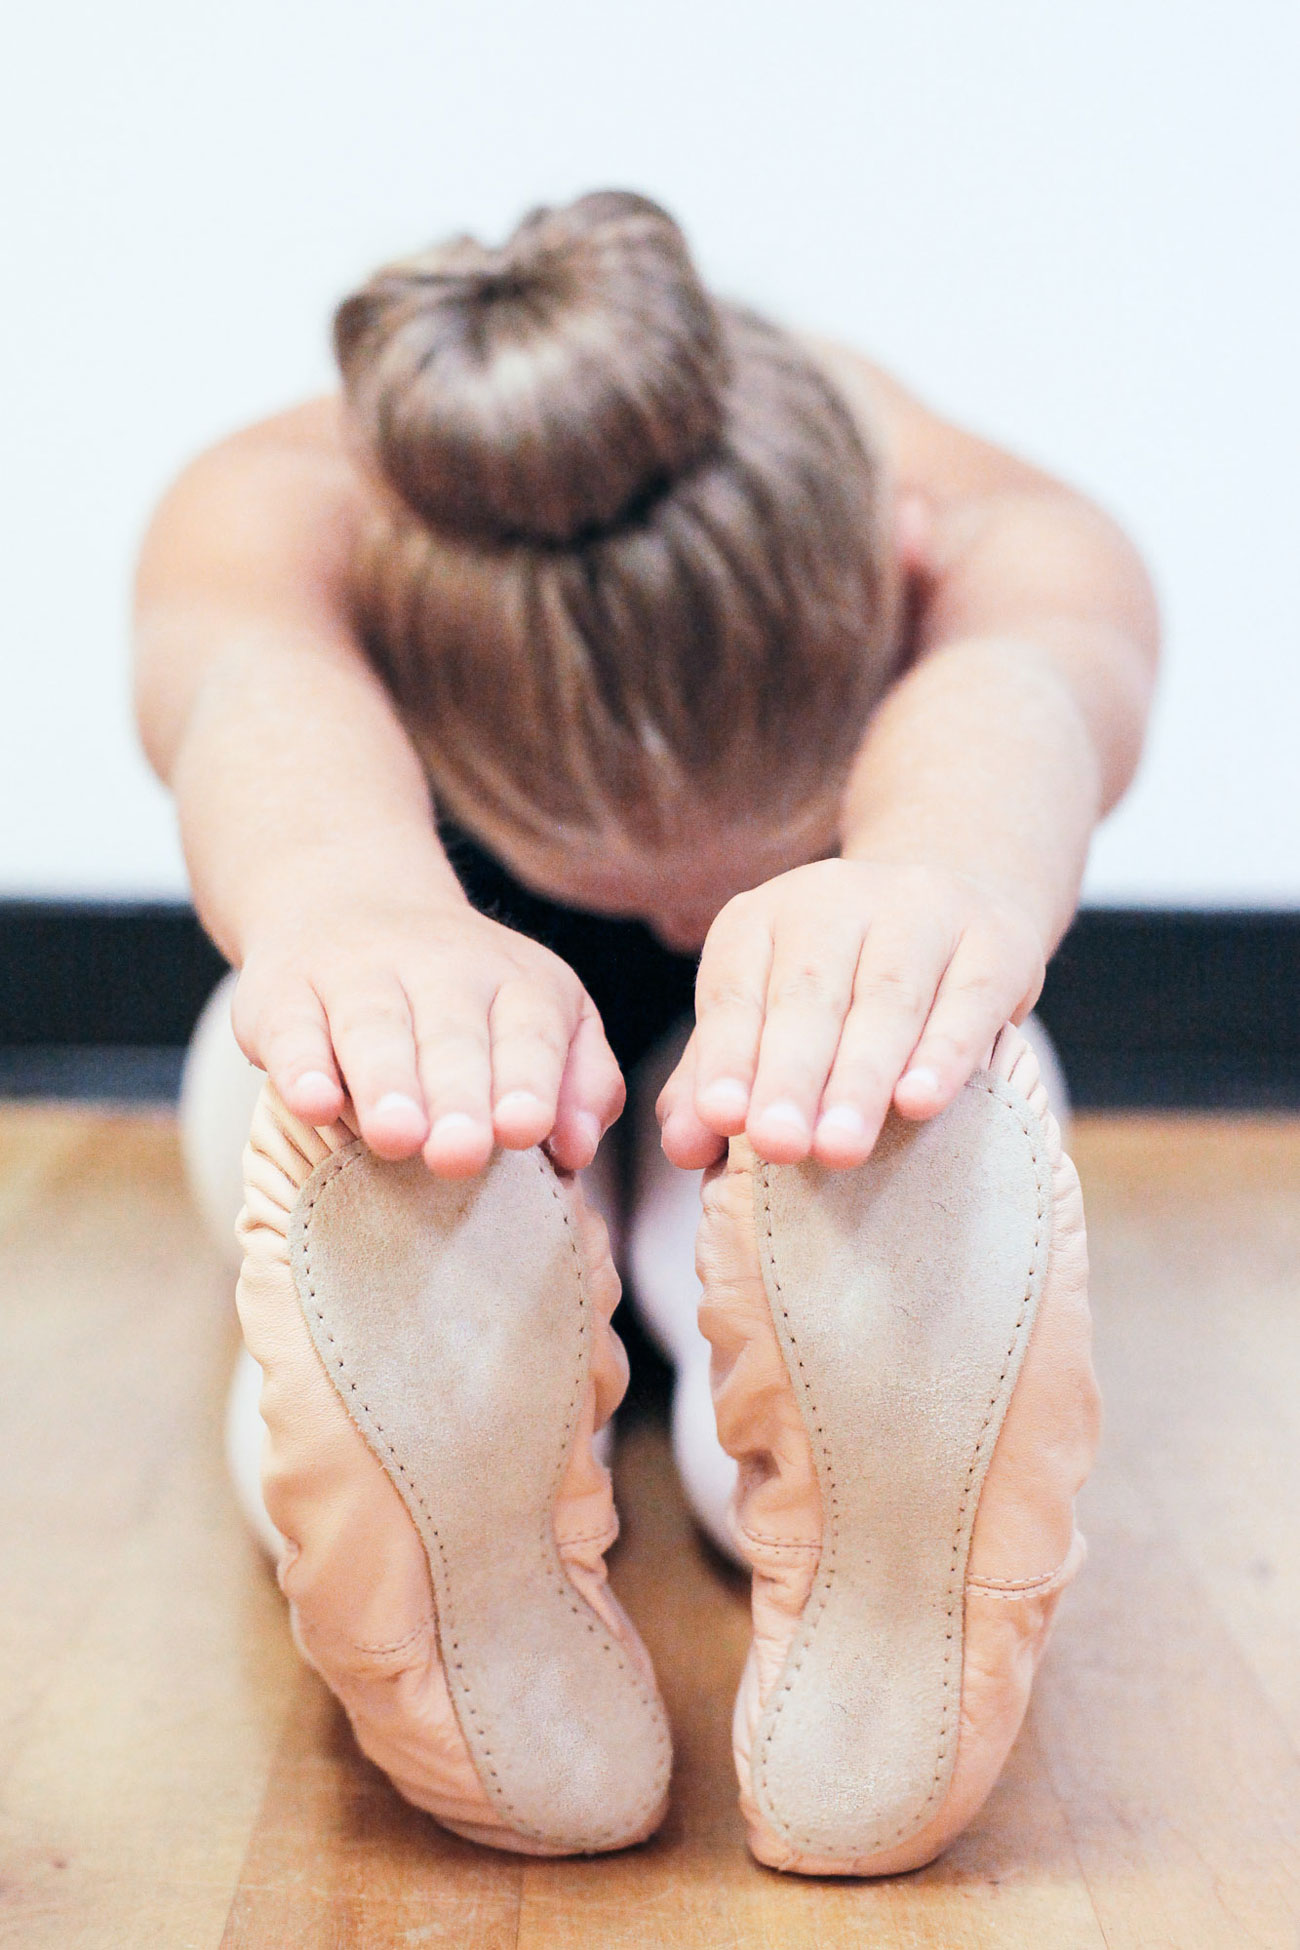 Ballerina touching toes